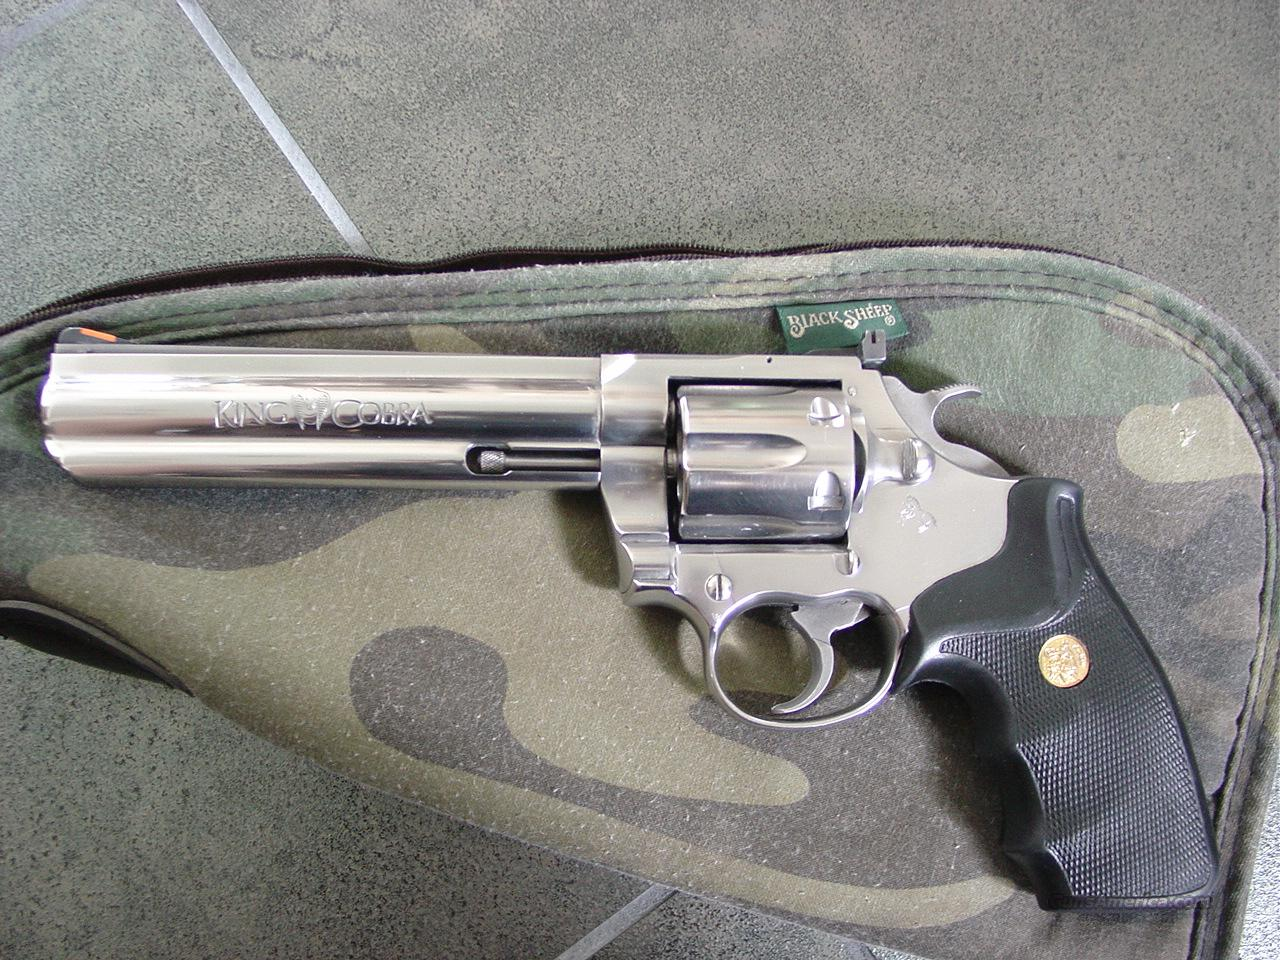 "Colt King Cobra 6"" polished stainless,357 magnum & 38 special,adj rear site,great action-very smooth  Guns > Pistols > Colt Double Action Revolvers- Modern"